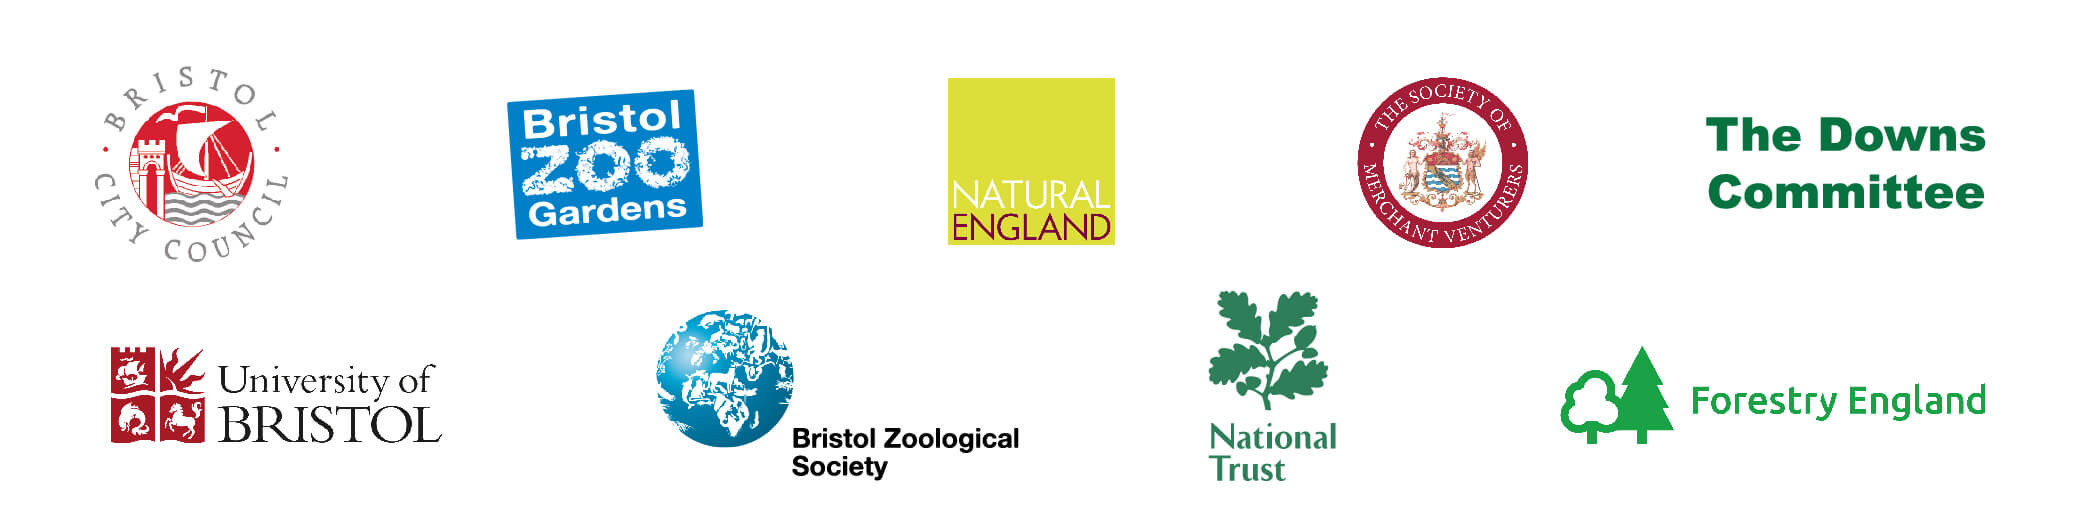 Avon Gorge & Downs partner logos of Bristol City Council, Bristol Zoo Gardens, University of Bristol, Merchant Venturers, The Downs Committee and Bristol Zoological Society